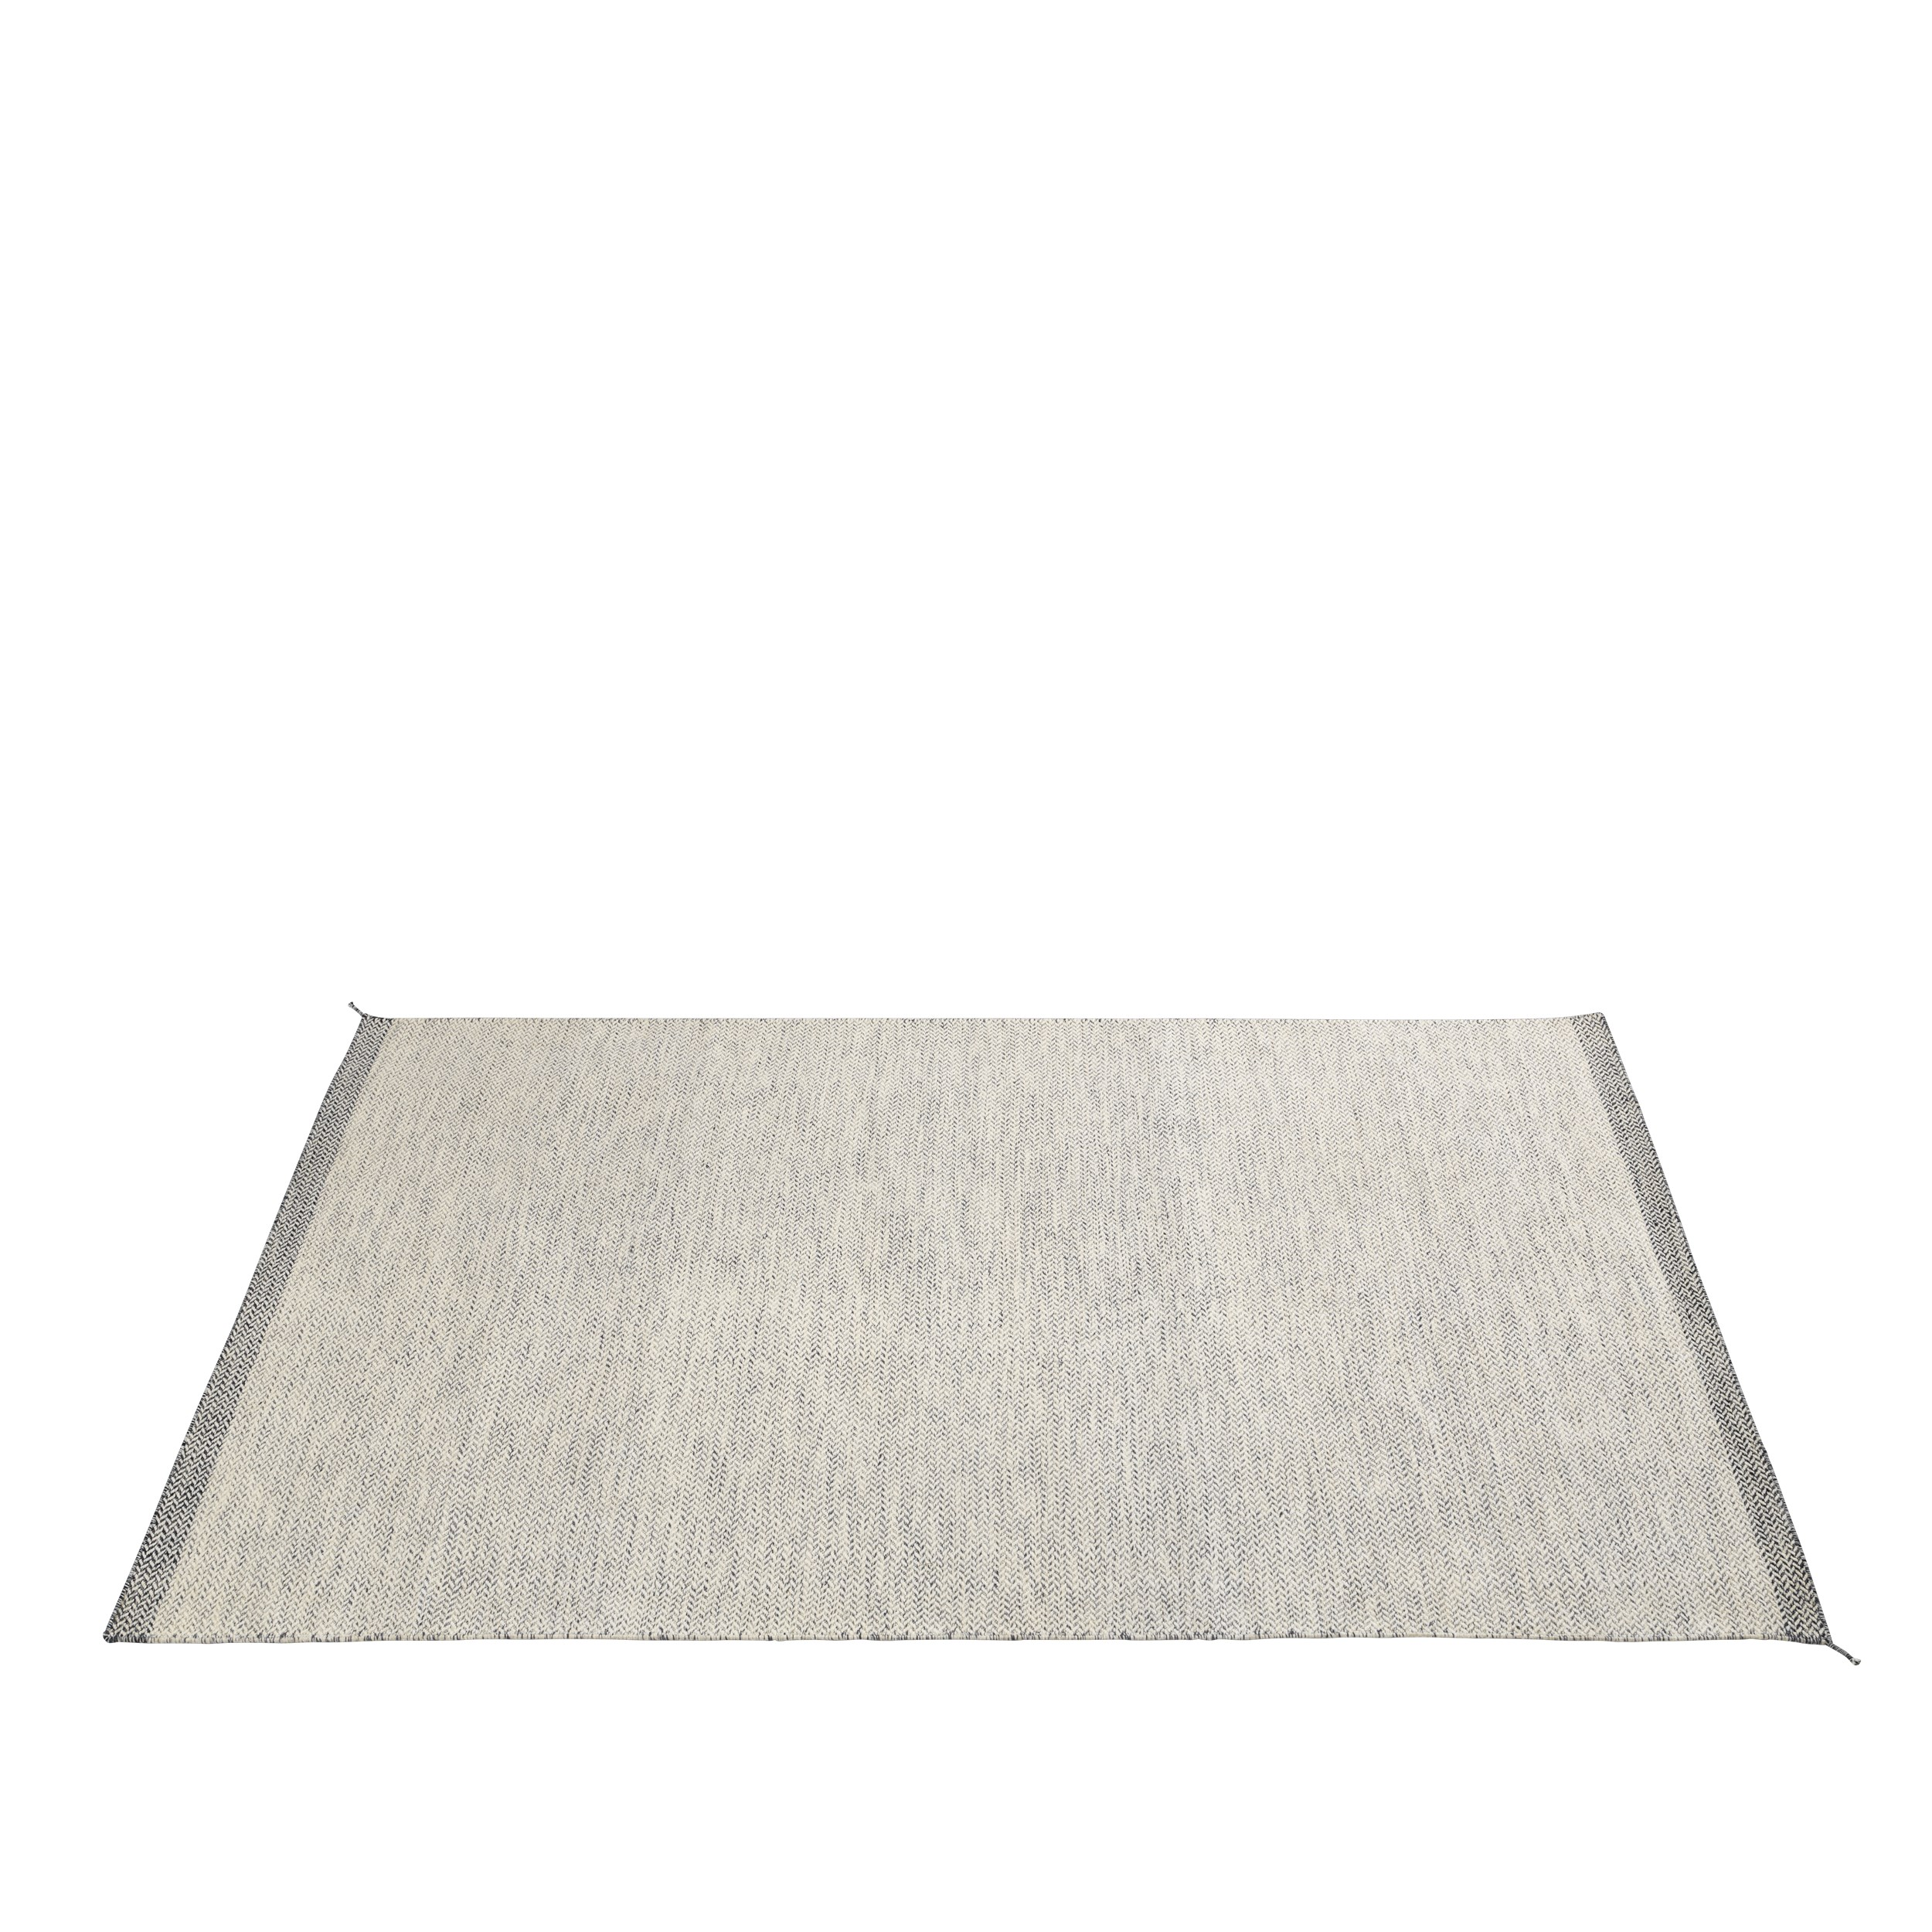 Ply rug 270 x 360 off - white